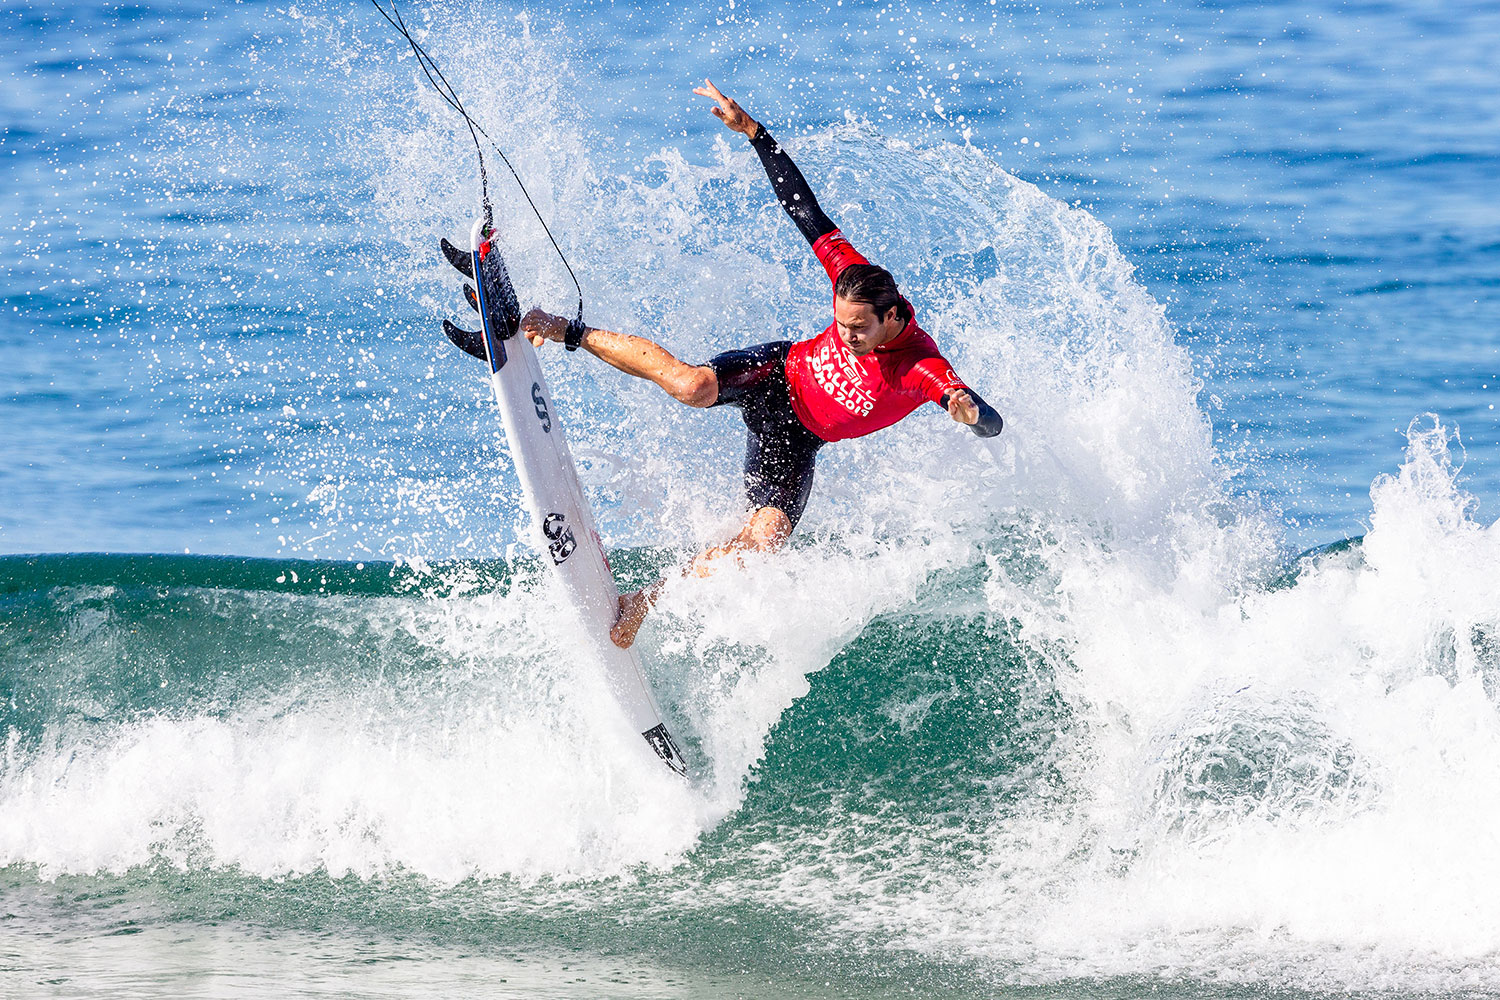 Jordy Smith at the 2019 Ballito Pro